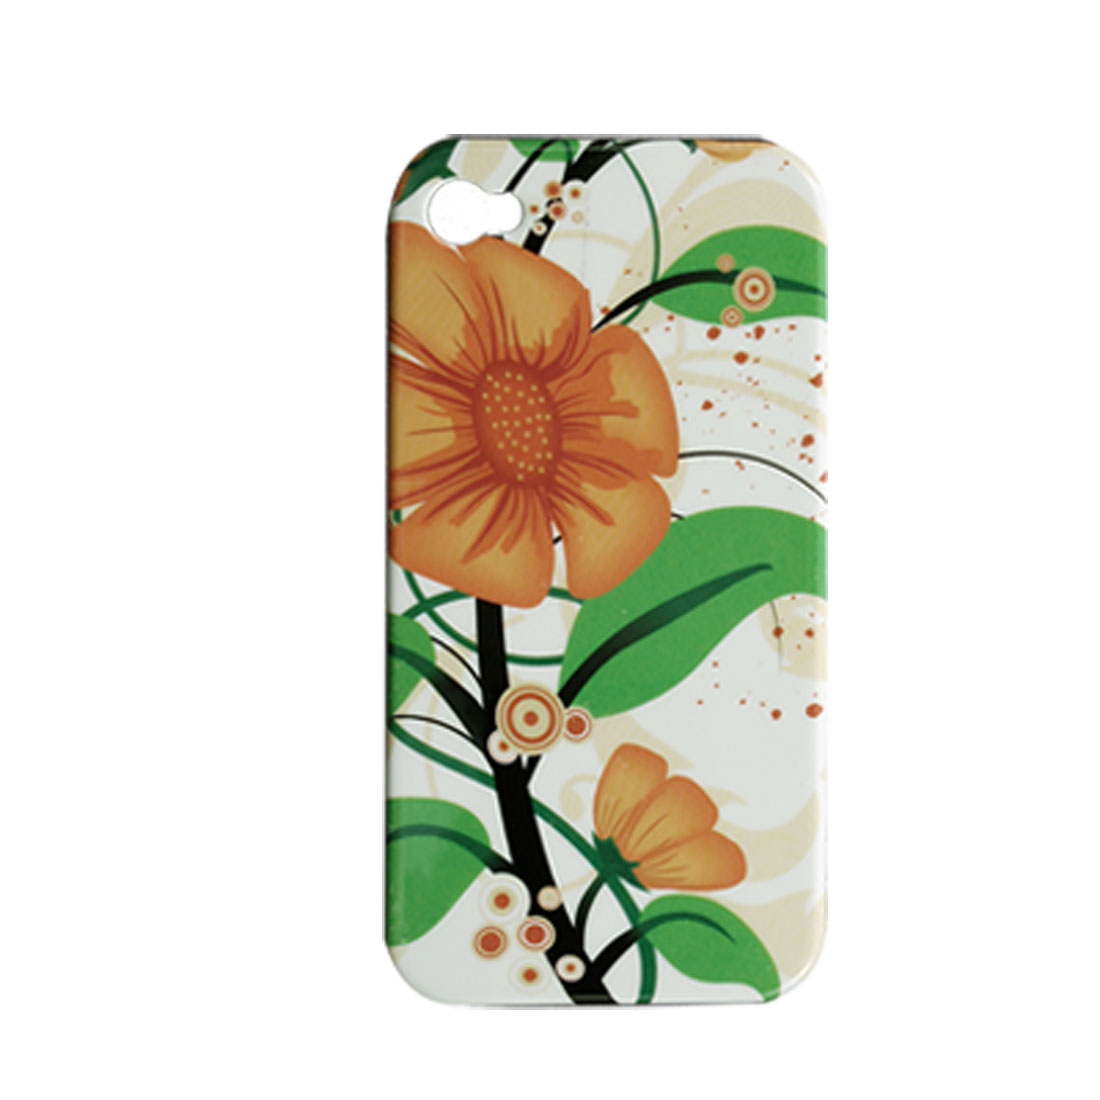 Hard Plastic Orange Flower Back Skin + Data Cable for iPhone 4